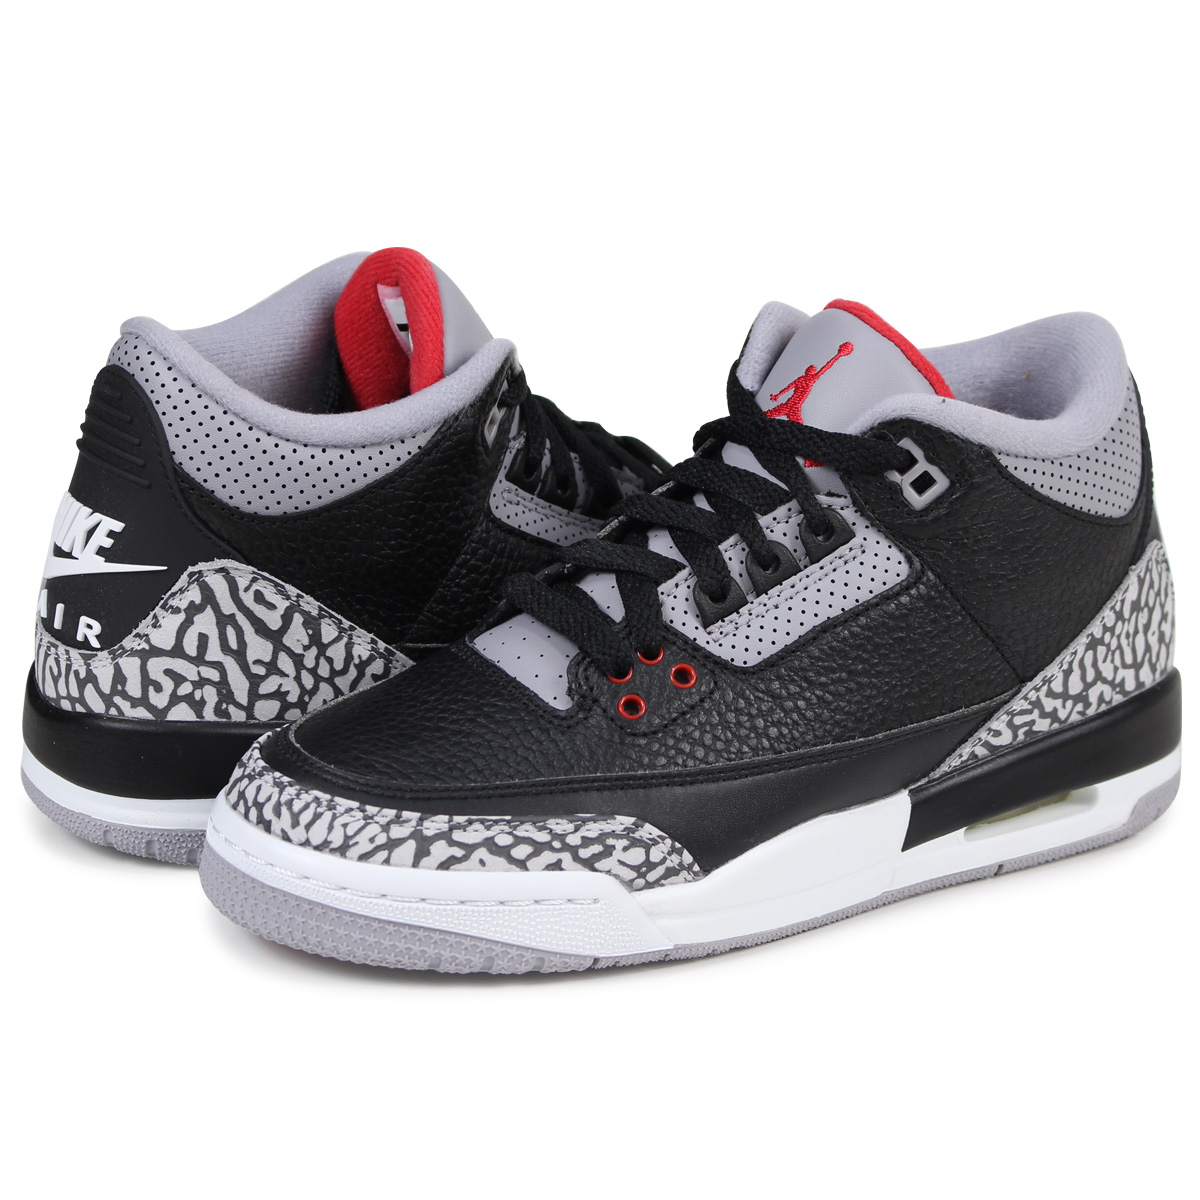 Nike NIKE Air Jordan 3 nostalgic lady's sneakers AIR JORDAN 3 RETRO OG BG  854,261-001 black